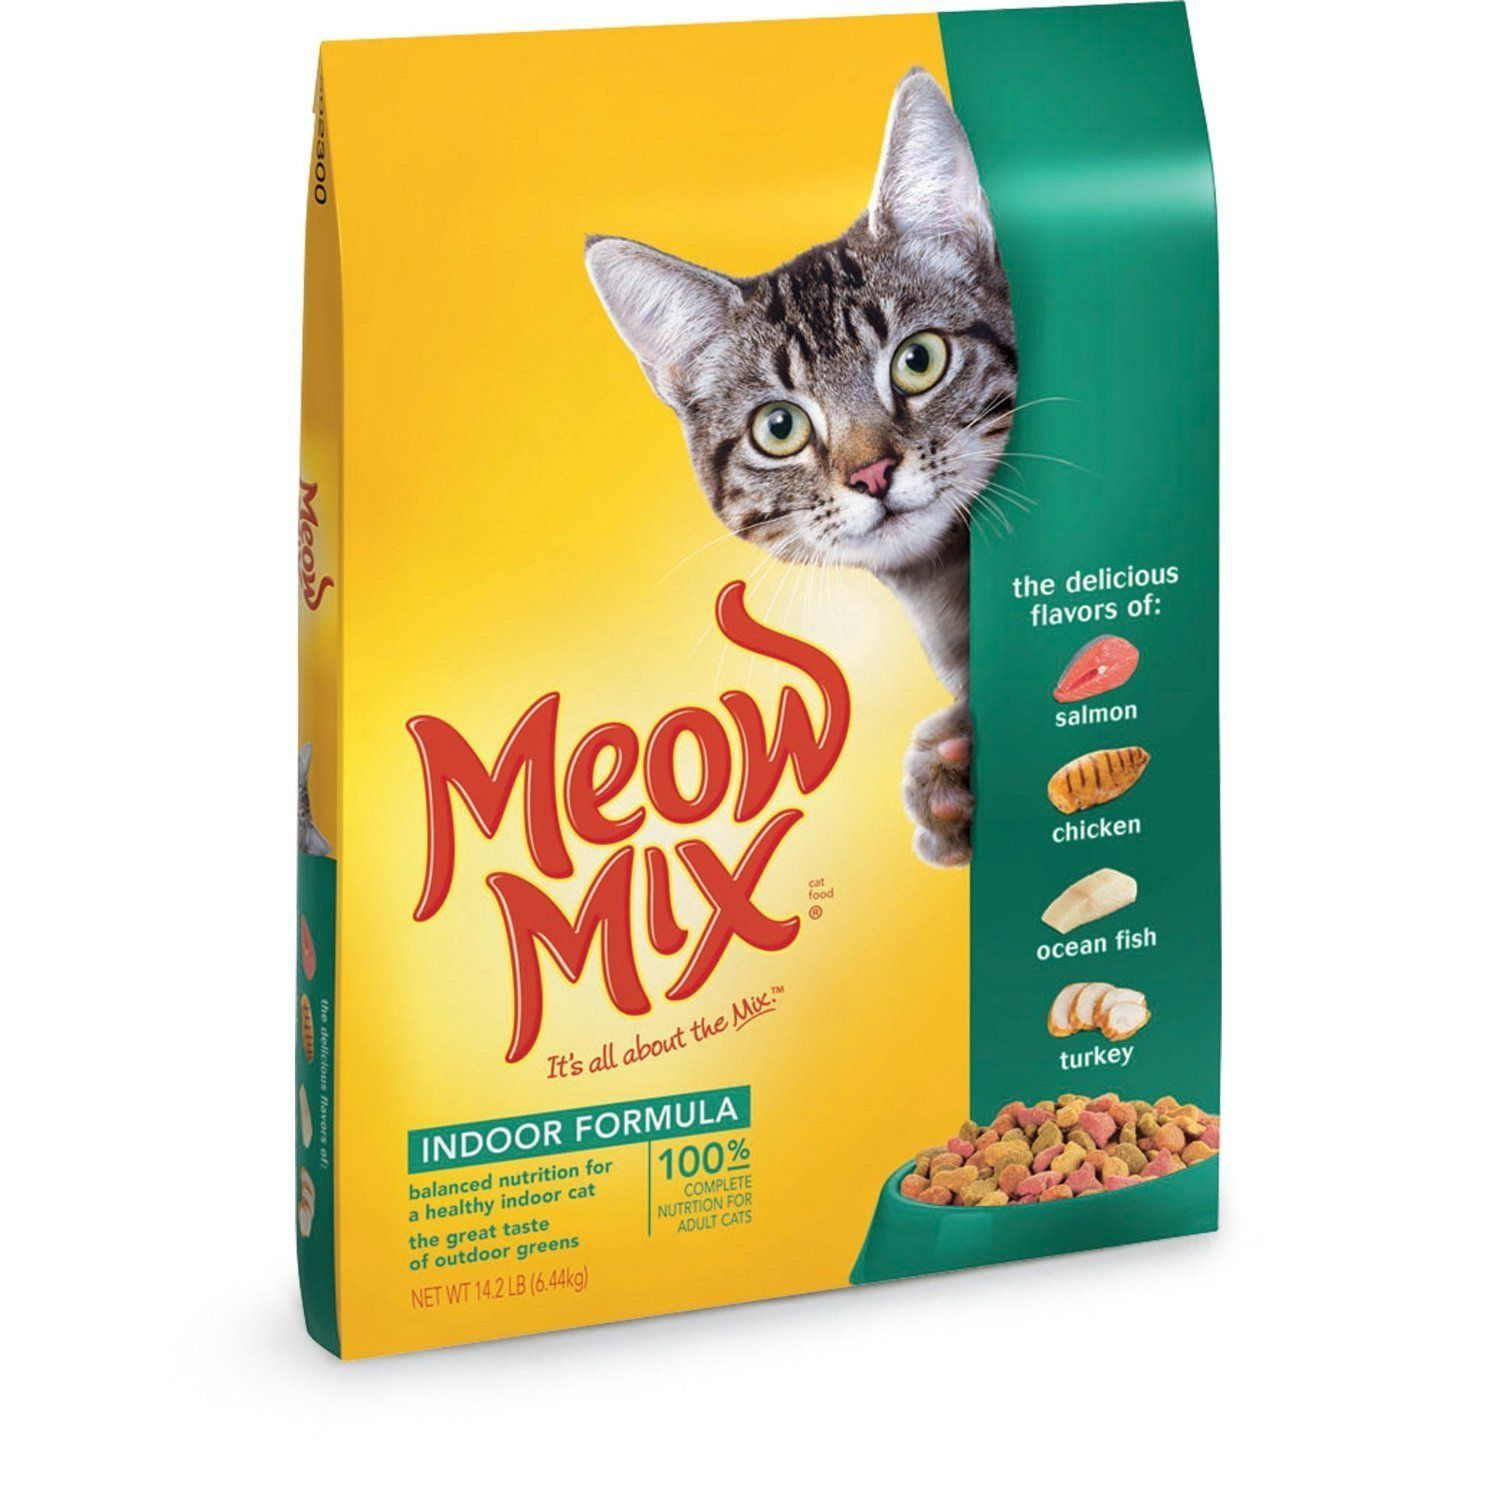 Meow Mix Indoor Formula Dry Cat Food New Value Pack Size 42 6